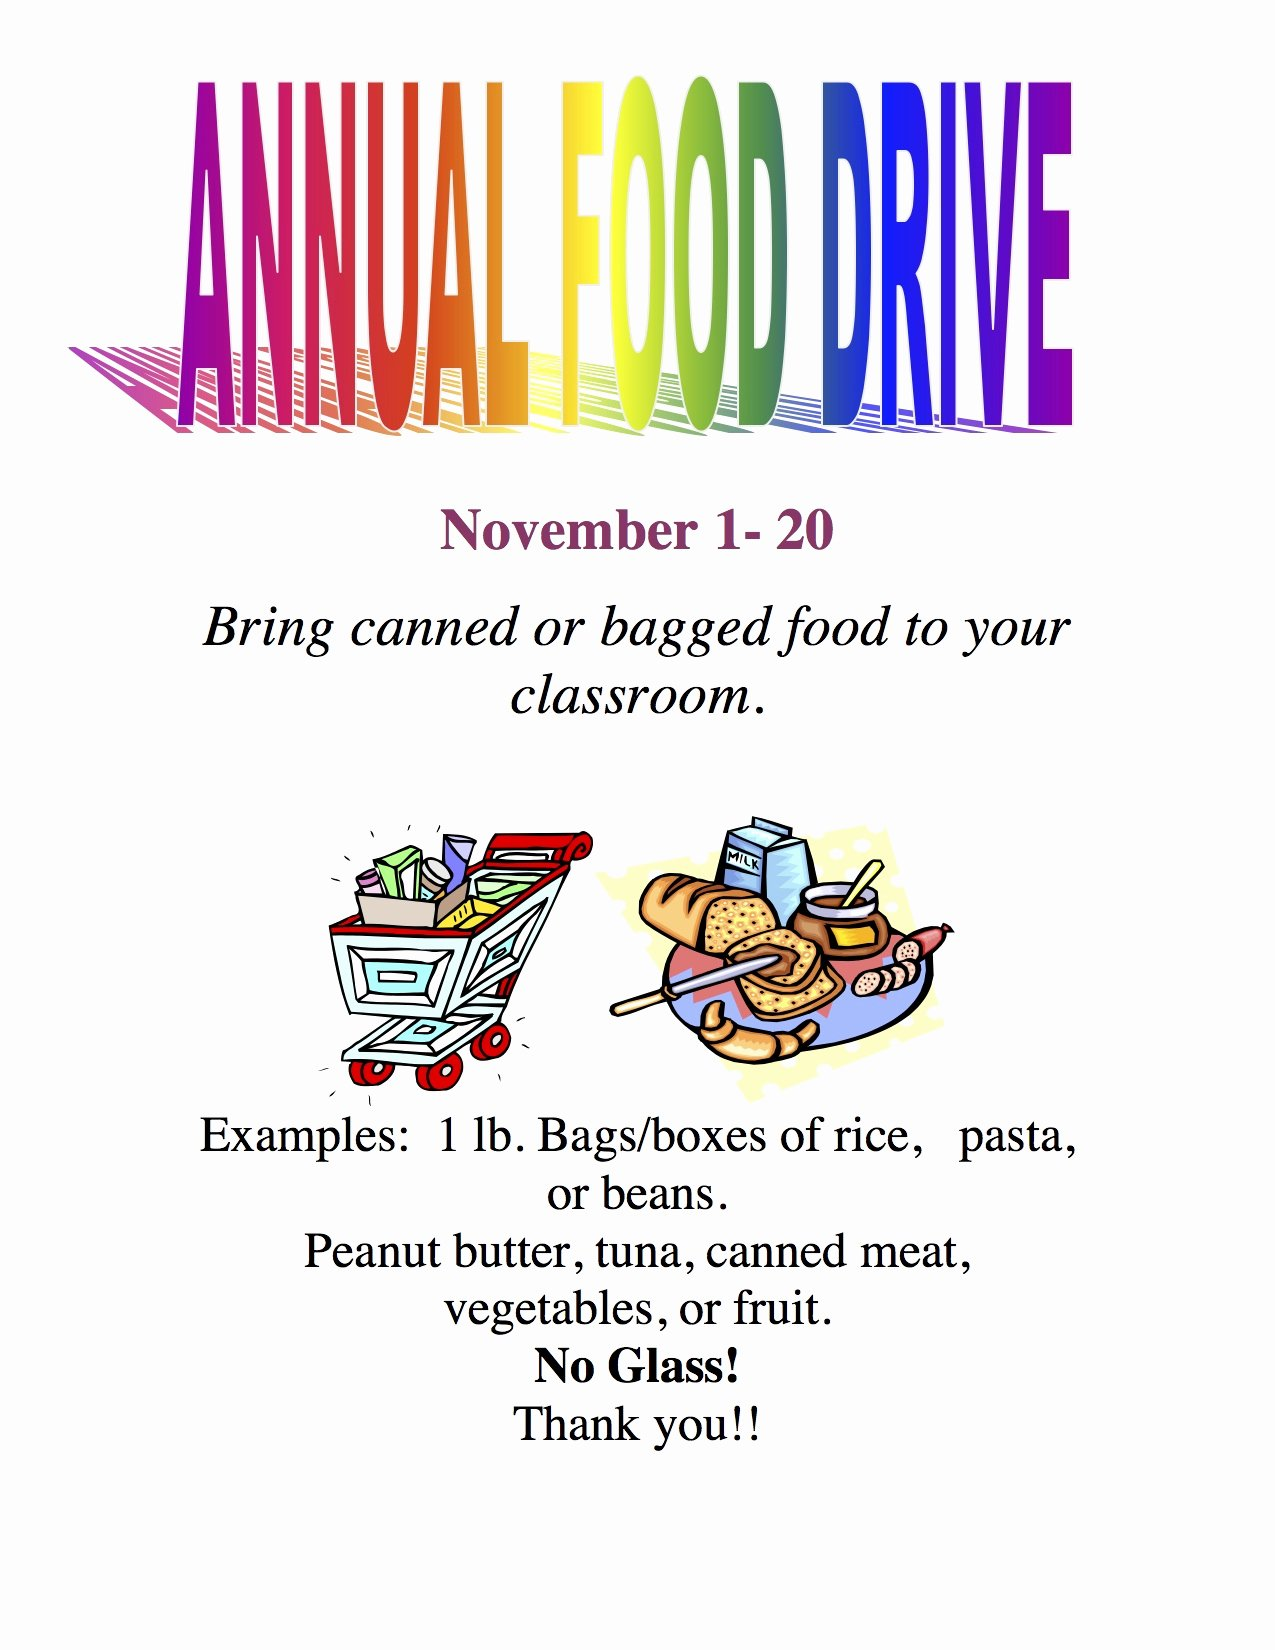 Canned Food Drive Flyer Fresh Current events… Camarena Elementary